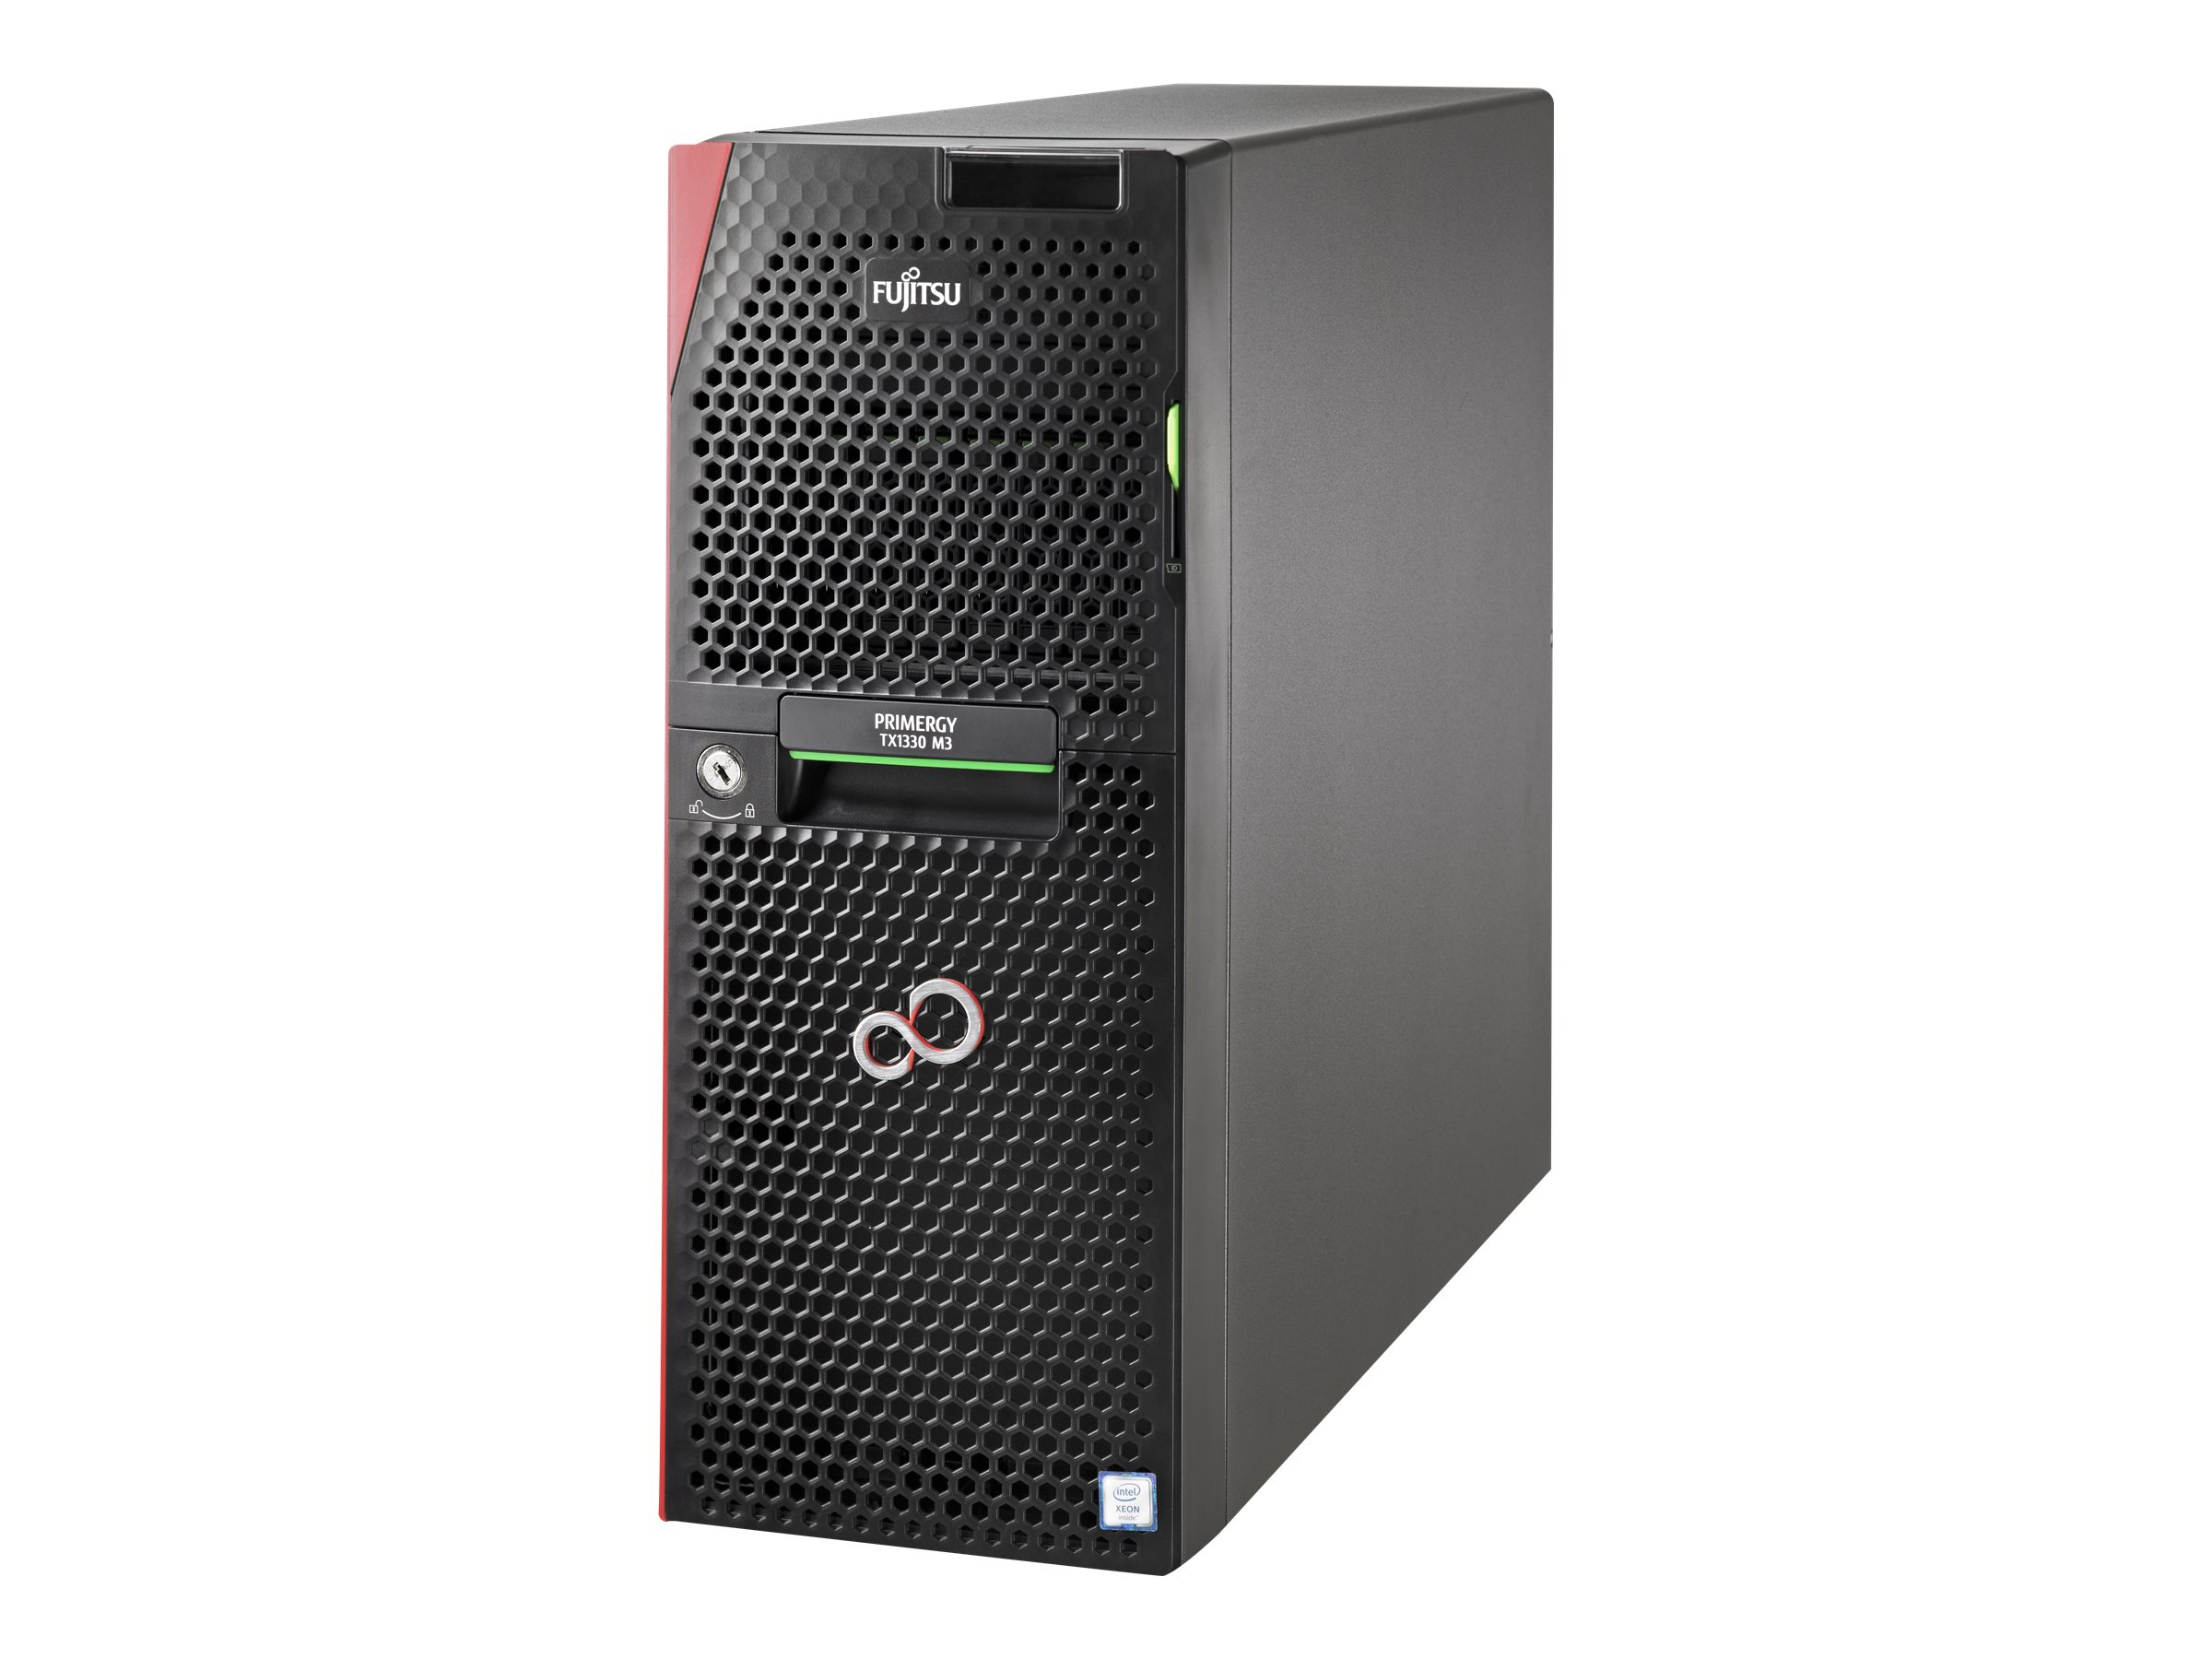 Fujitsu PRIMERGY TX1330 M3 - Server - Tower - 1-Weg - 1 x Xeon E3-1220V6 / 3 GHz - RAM 8 GB